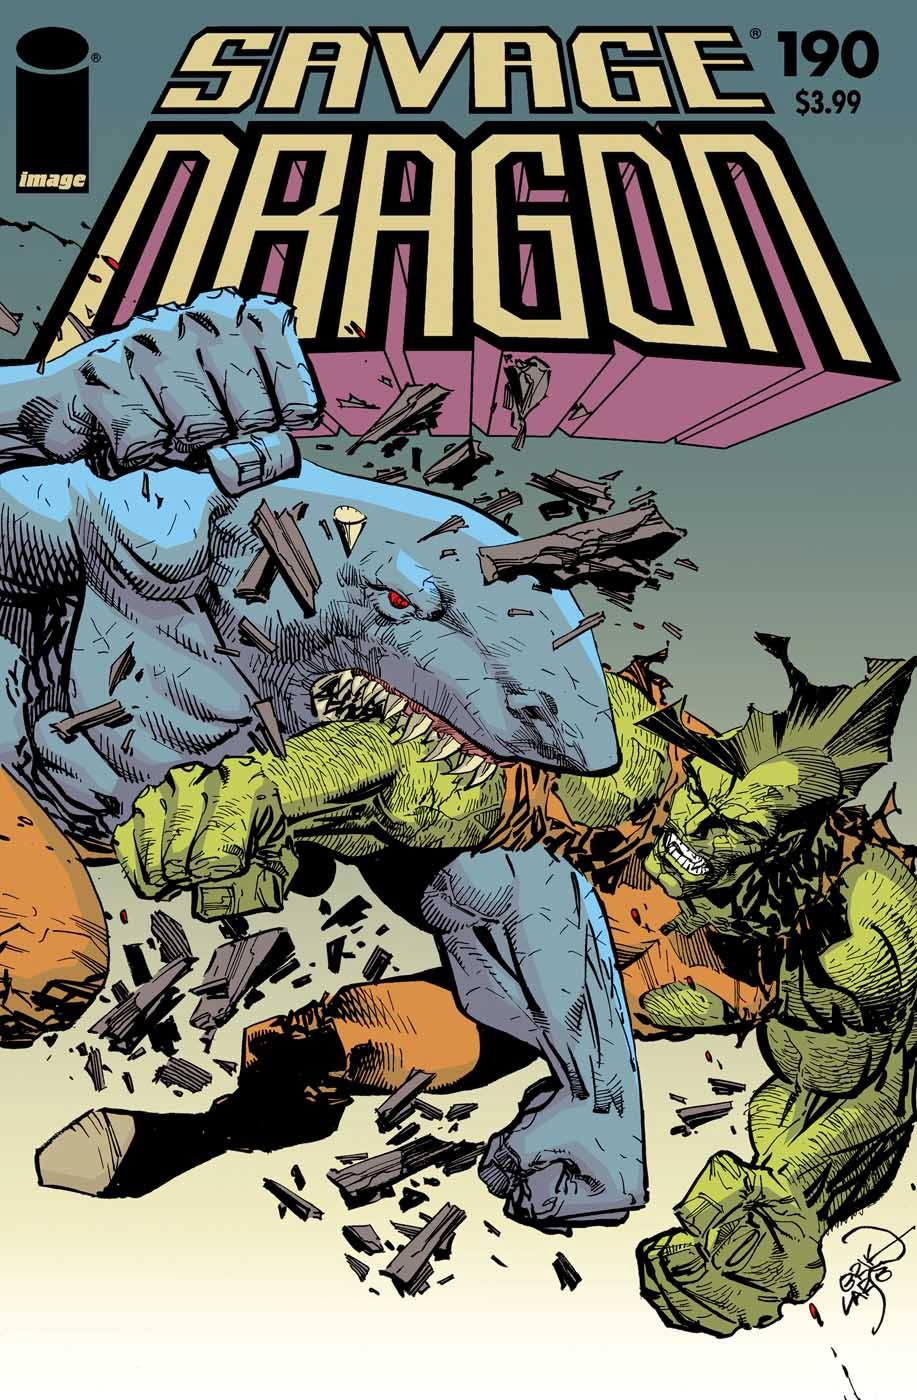 Savage Dragon Creator Larsen Shares Digest-Size Process With Fans